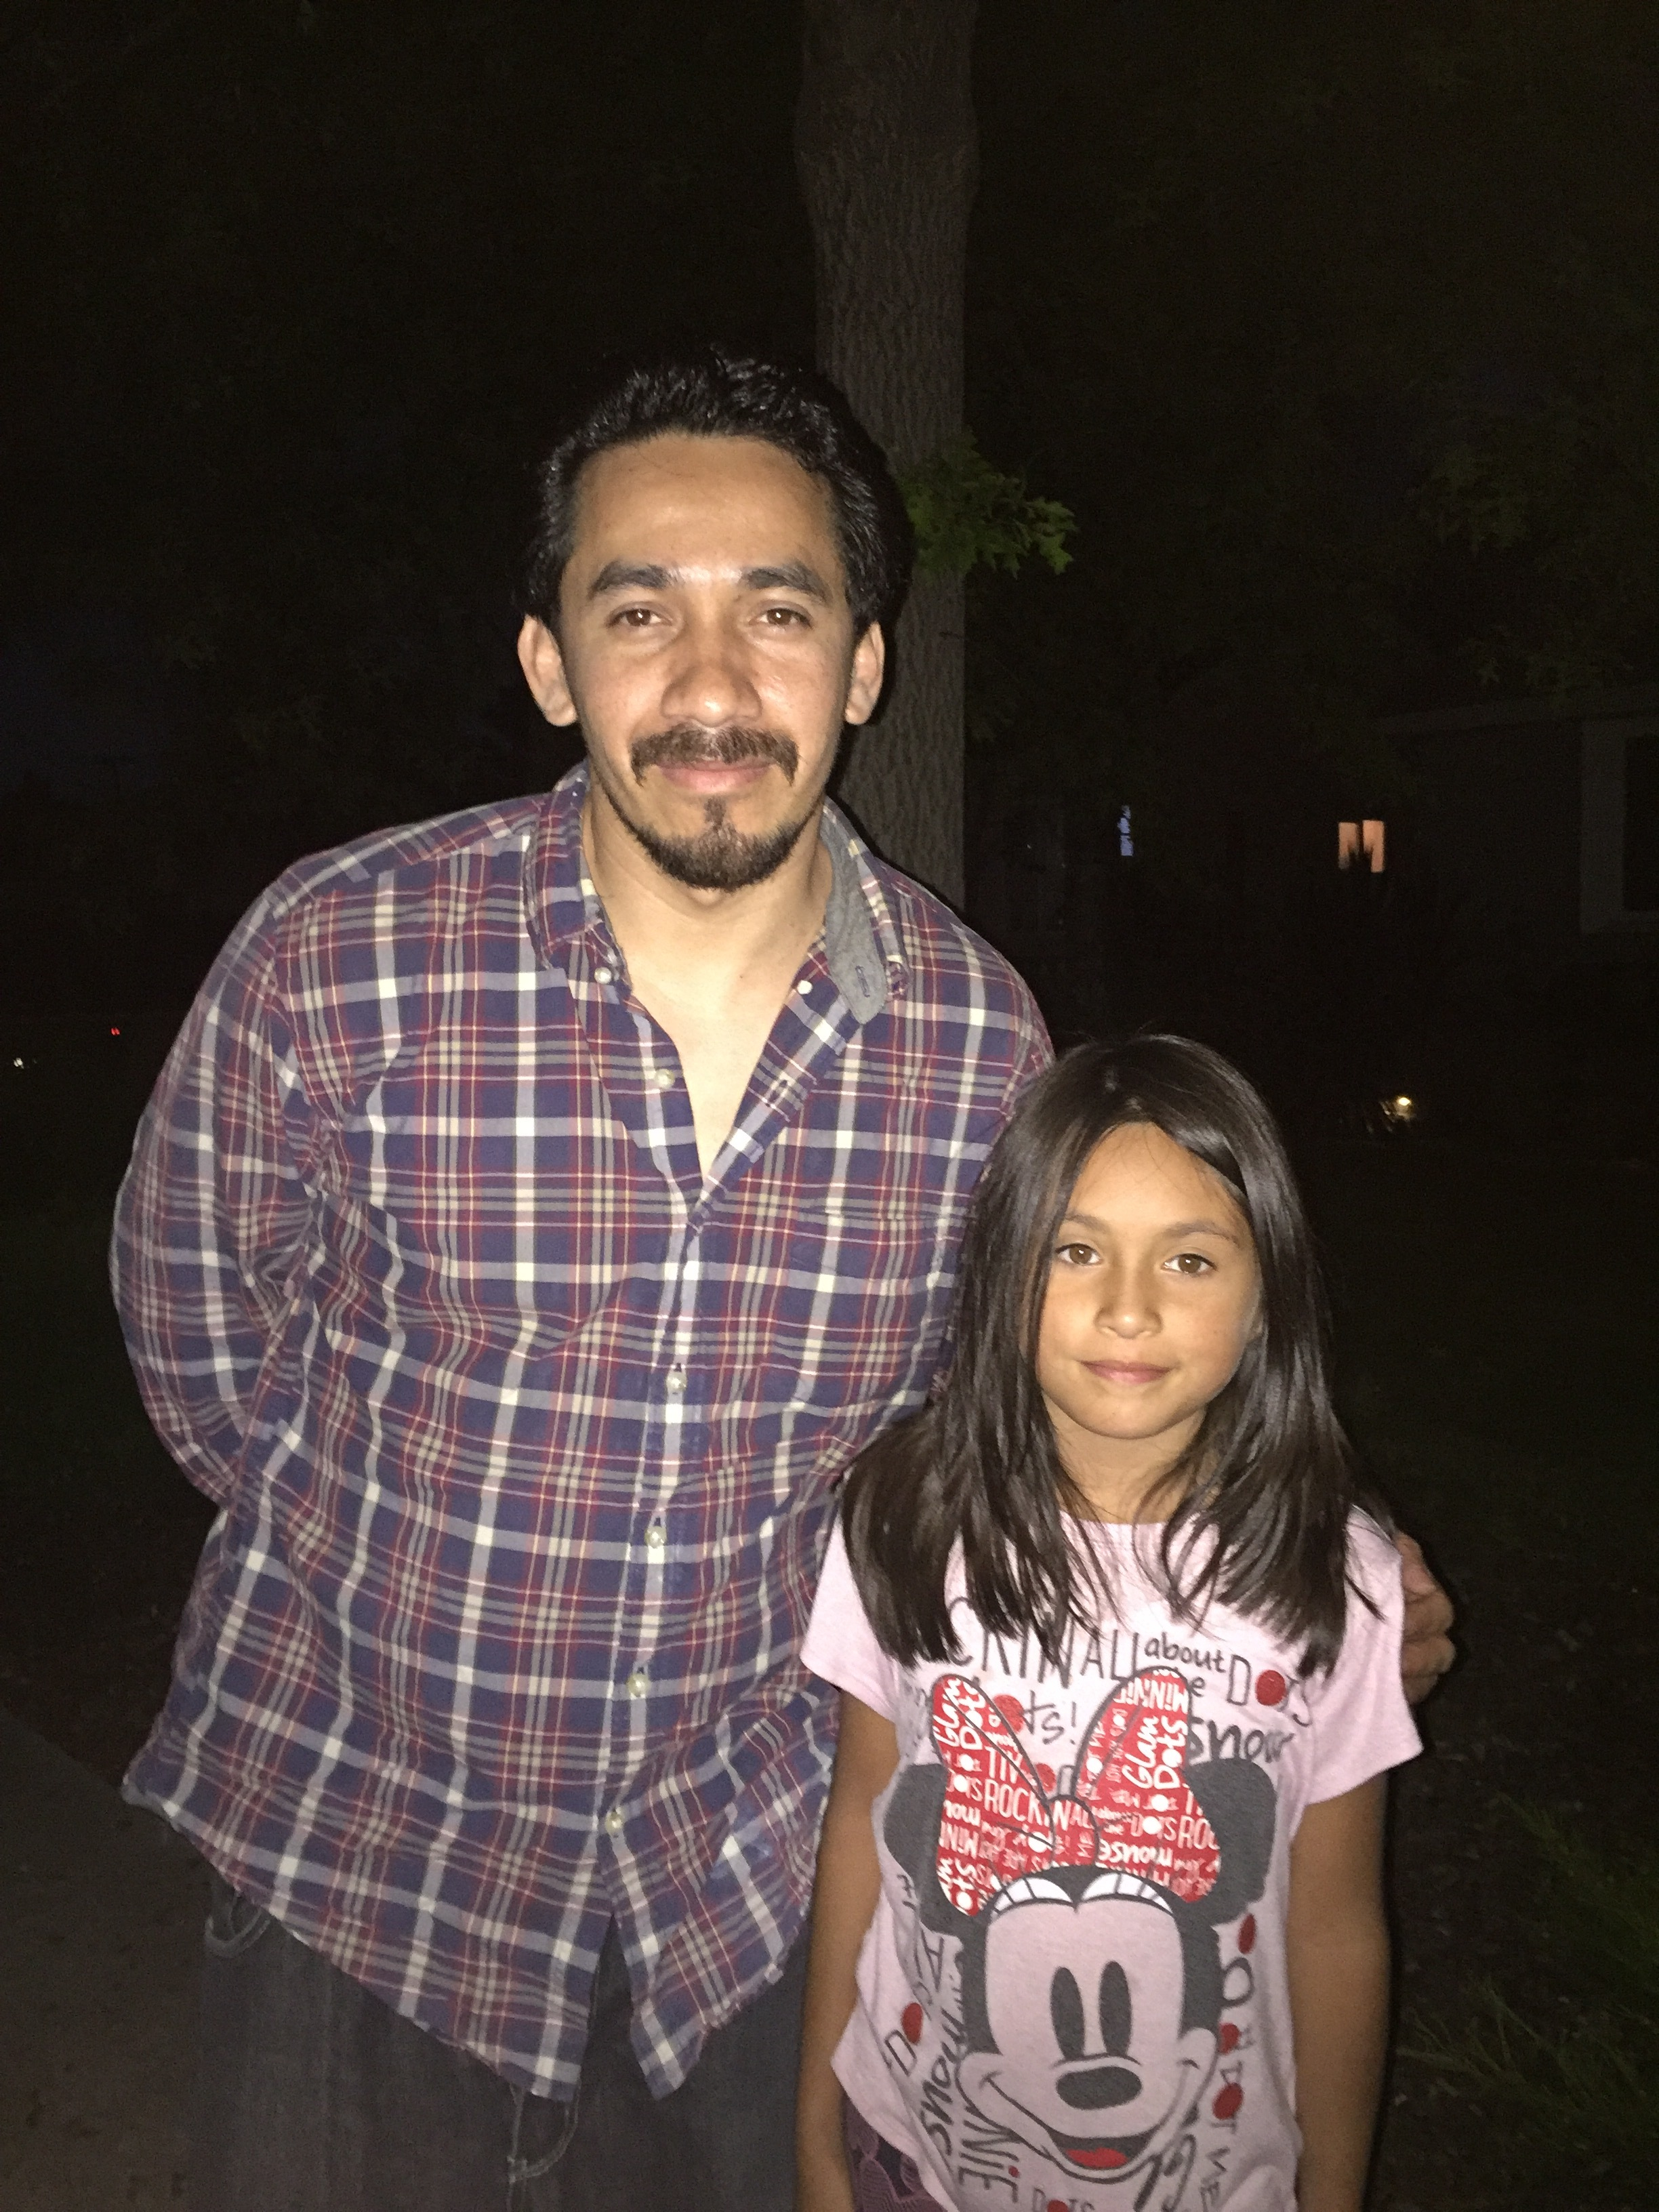 José - José is a father, who for nine months, was detained by ICE and unable to care for his daughter. Jose moved to the U.S. when he was 15-years-old--more than two decades ago. He was granted a $20,000 bond but raising that amount is personally out of his reach. As a result, he was stuck in detention and unable to defend himself or provide crucial evidence to a judge that could allow him to obtain permanent legal status.After nine months, we were able to pay most of José's bond and gain his release. Now José is staying with his cousin while he prepares for his hearing in July. He is able to see his 9-year-old daughter and collect evidence to try to stay in the United States with his community of more than two decades.